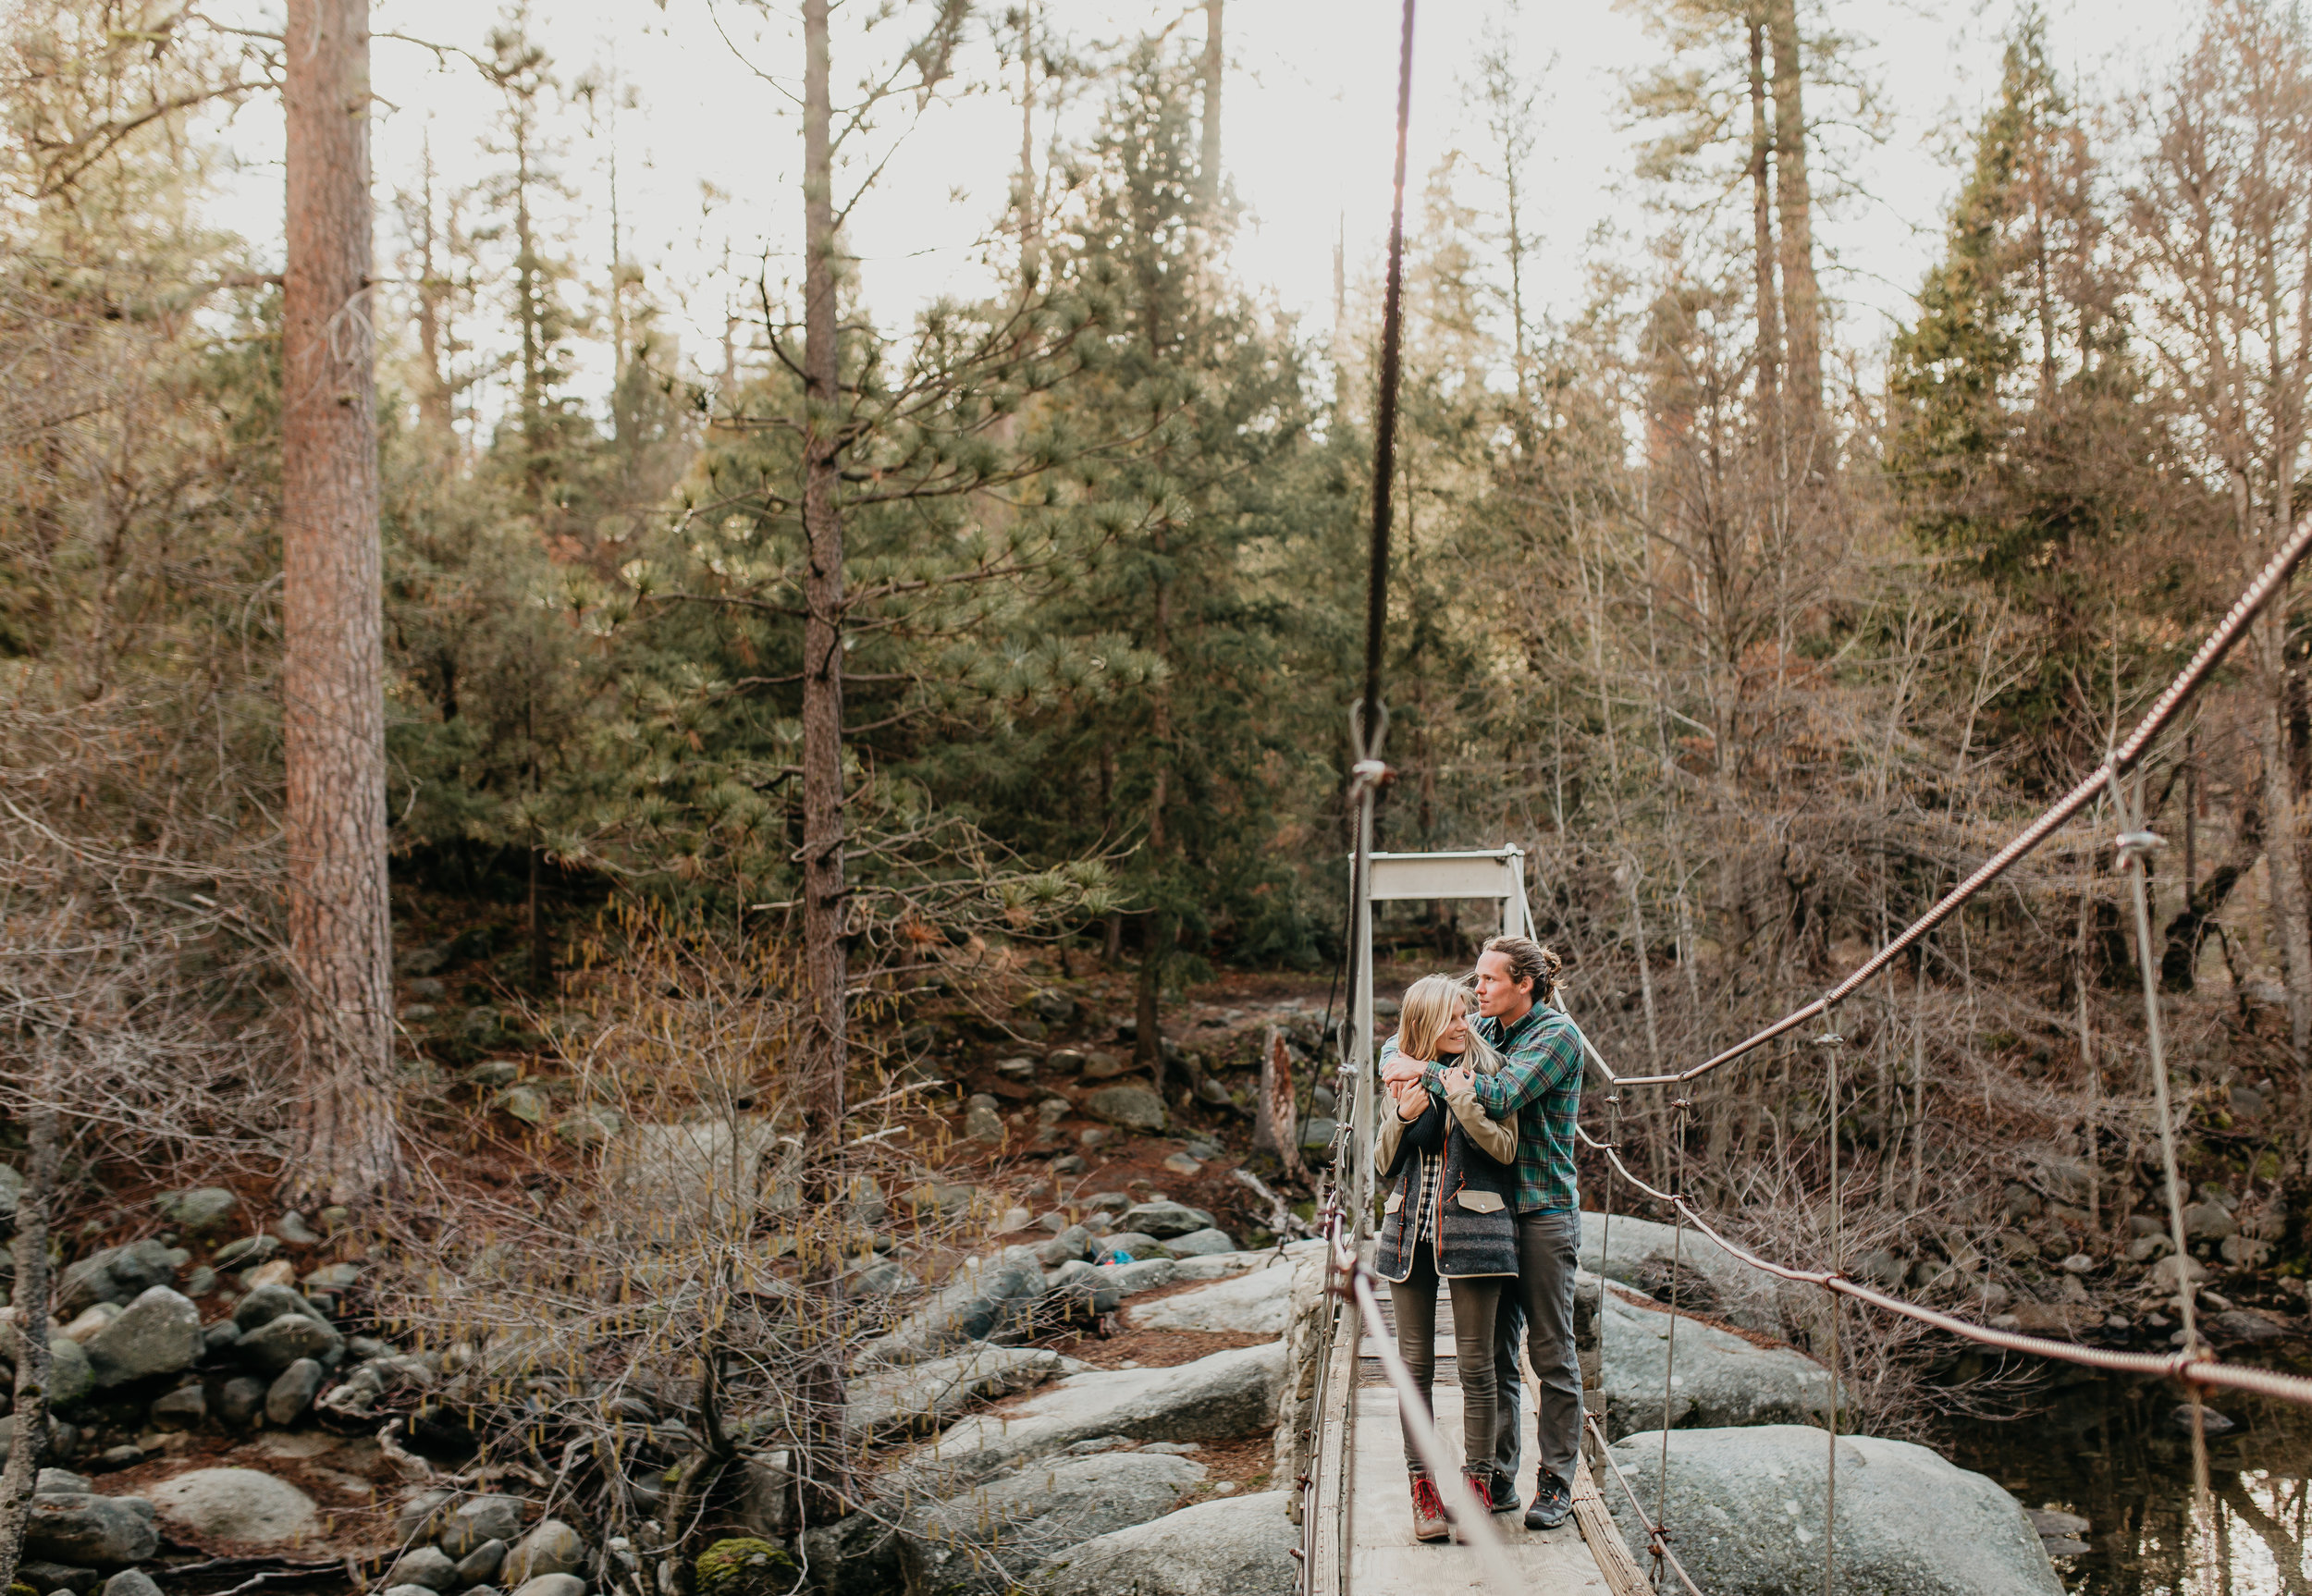 nicole-daacke-photography-yosemite-riverside-adventurous-engagement-photos-in-yosemite-national-park-elopement-photographer-weddings-travel-destination-wedding-eloping-elope-pine-forest-35.jpg